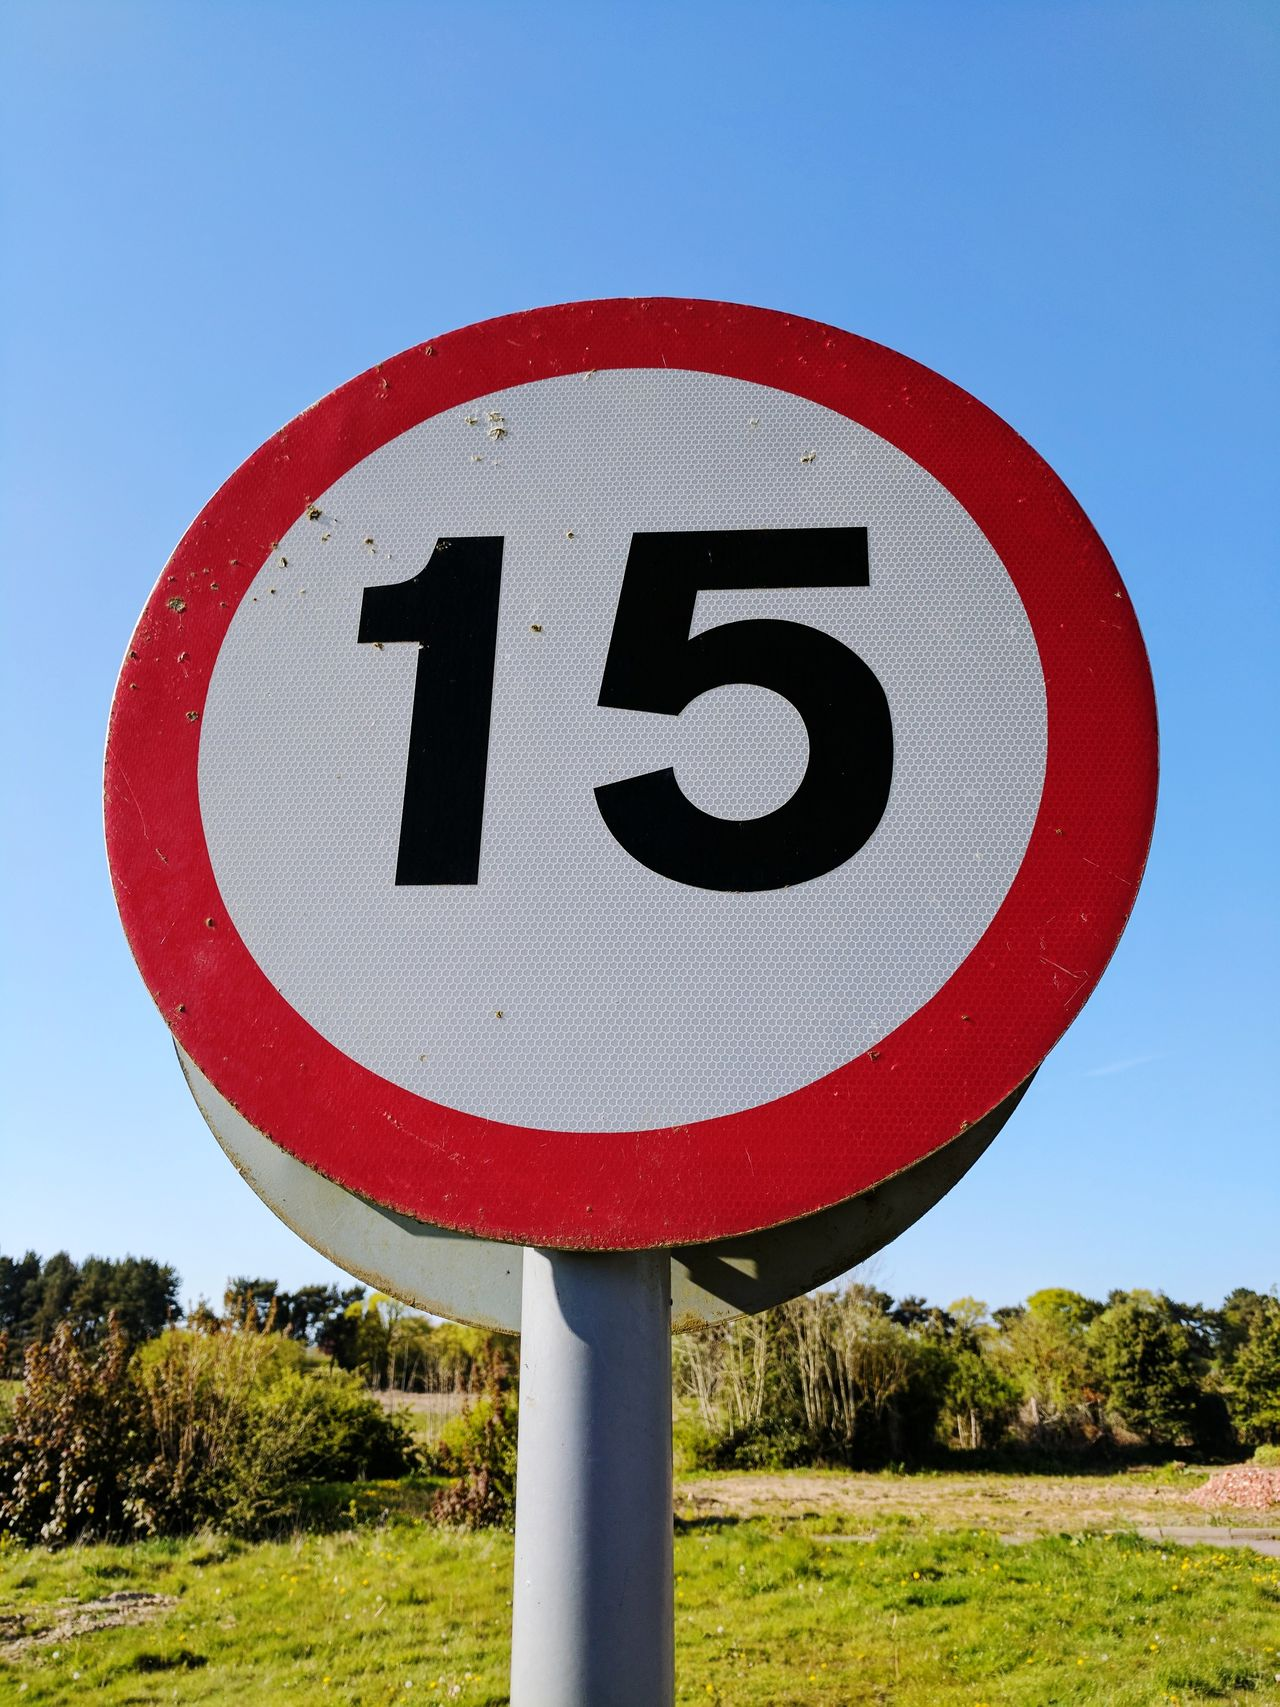 Road Sign Circle Speed Limit Sign Number Communication Red No People Day Outdoors Sky Close-up Clear Sky Blue Sky 15 Number 15